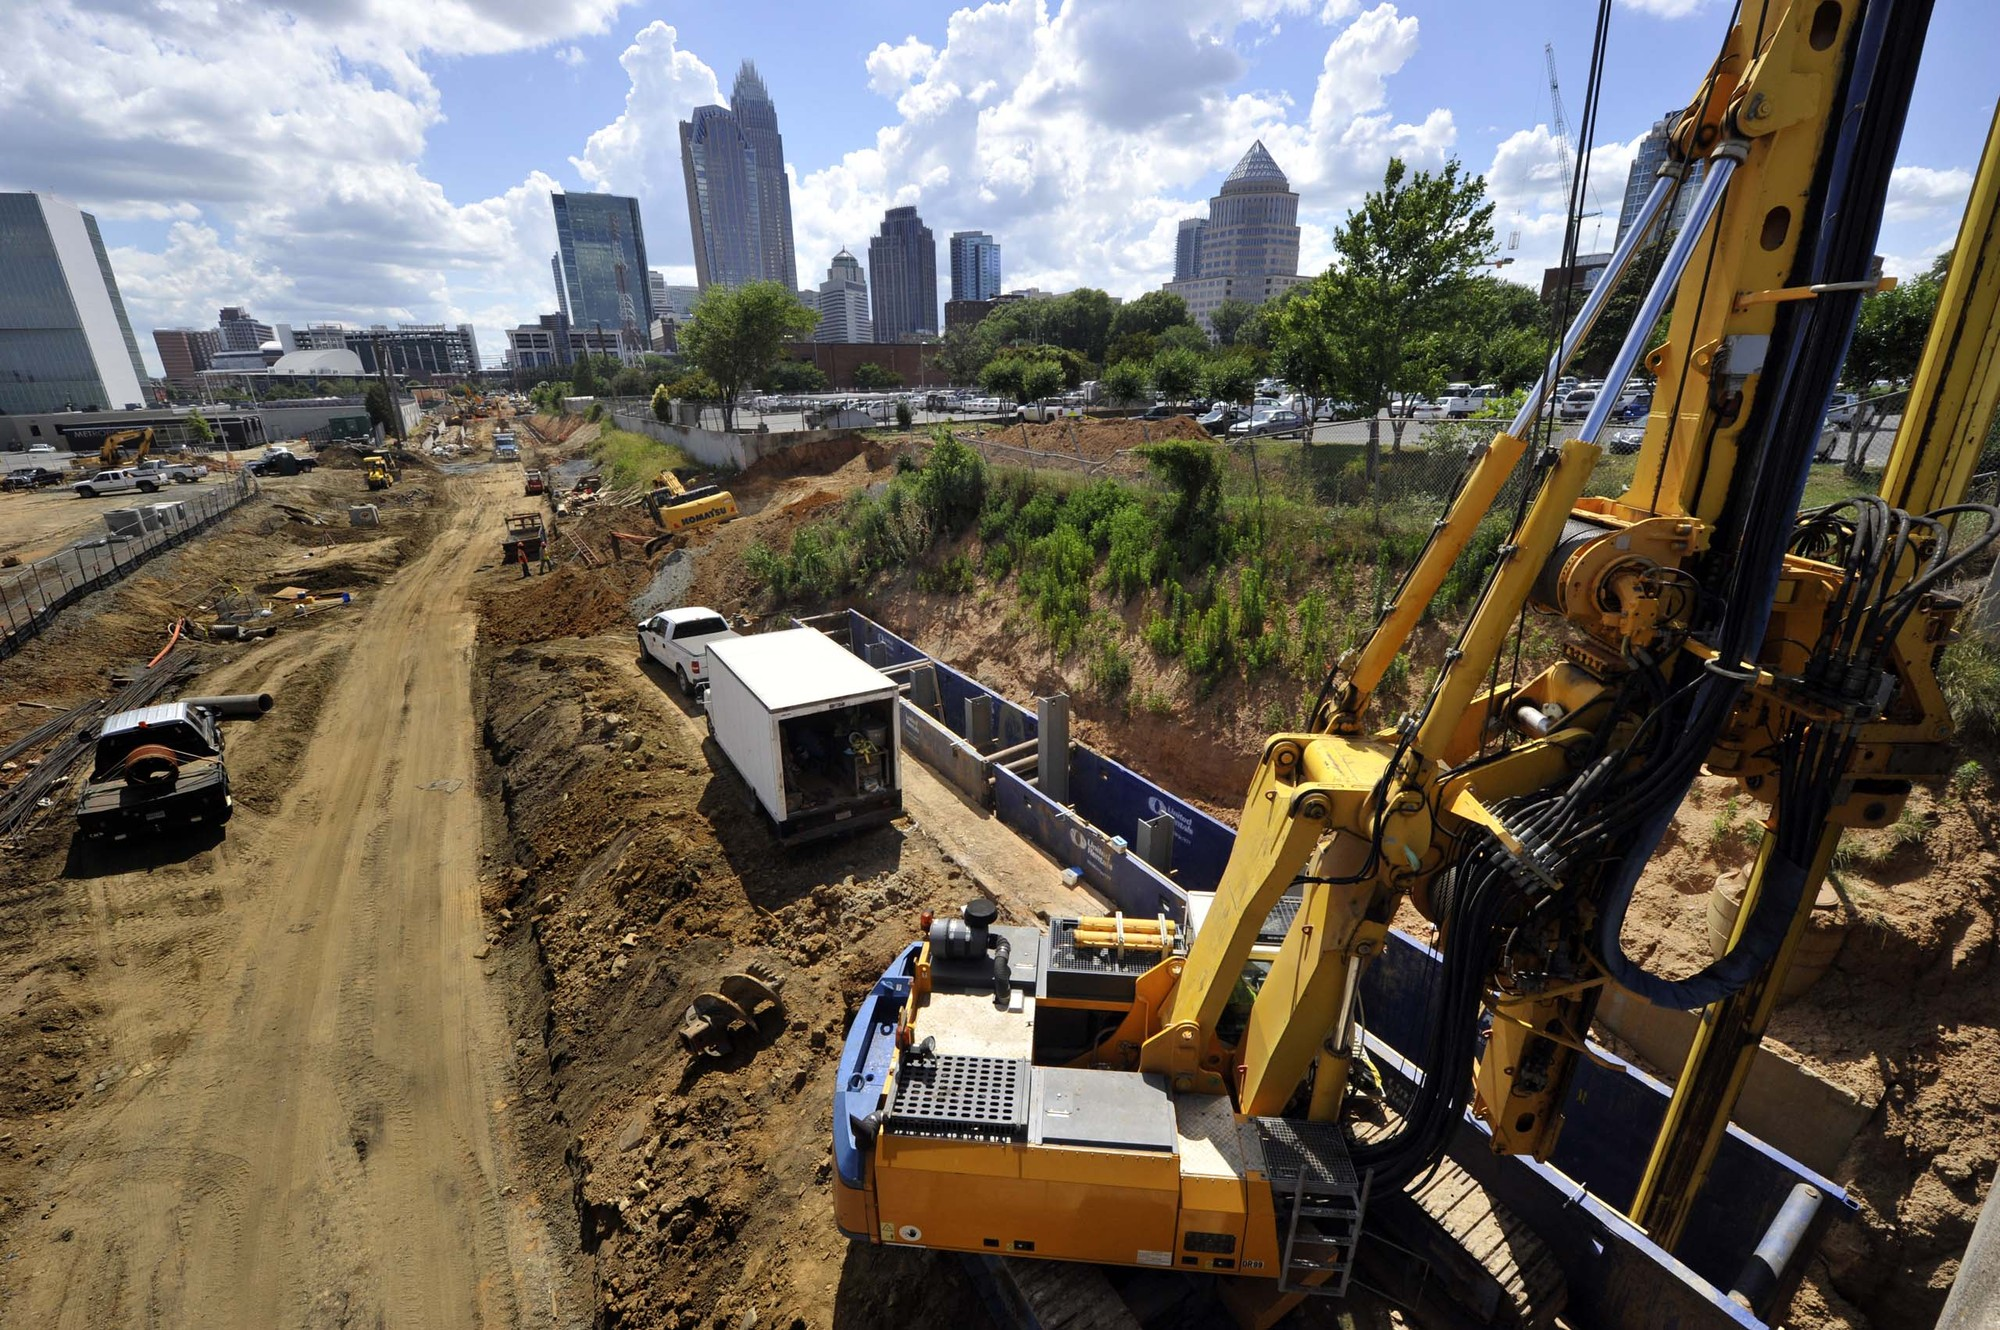 Charlotte road construction projects - View The Full Image Construction